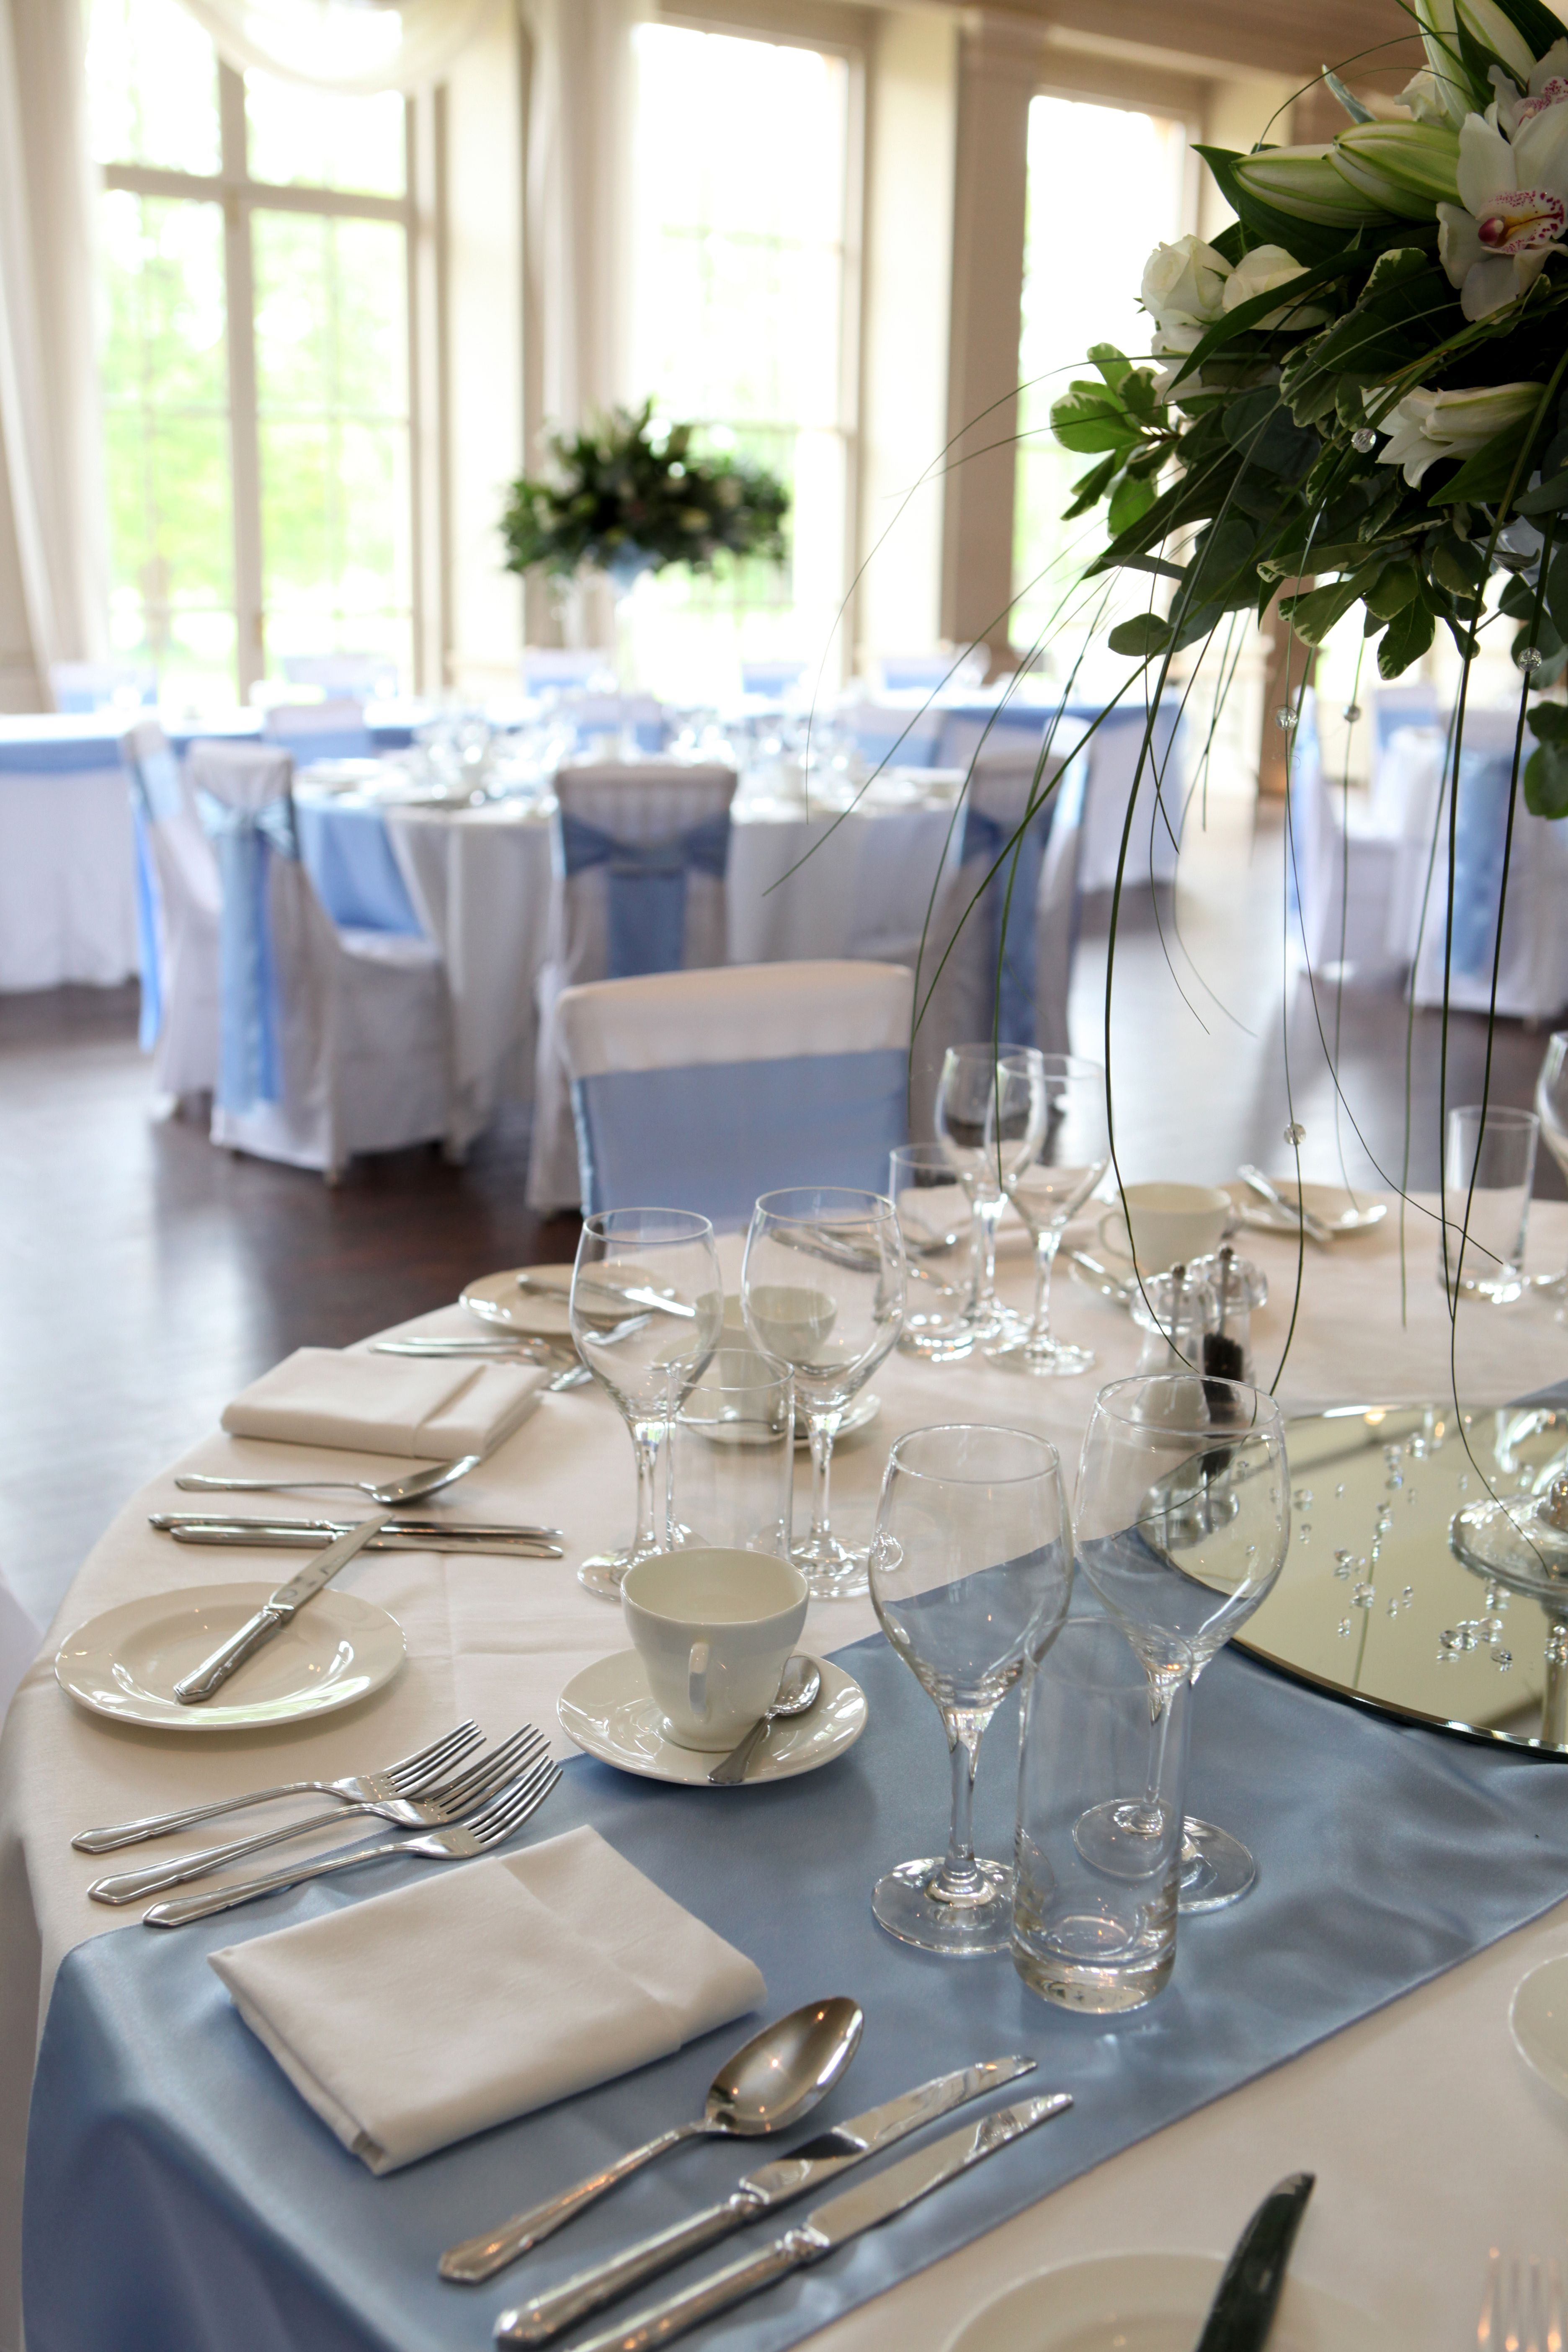 Magnificent Sky Blue Table Runner And Sashes Stubton Hall Download Free Architecture Designs Sospemadebymaigaardcom